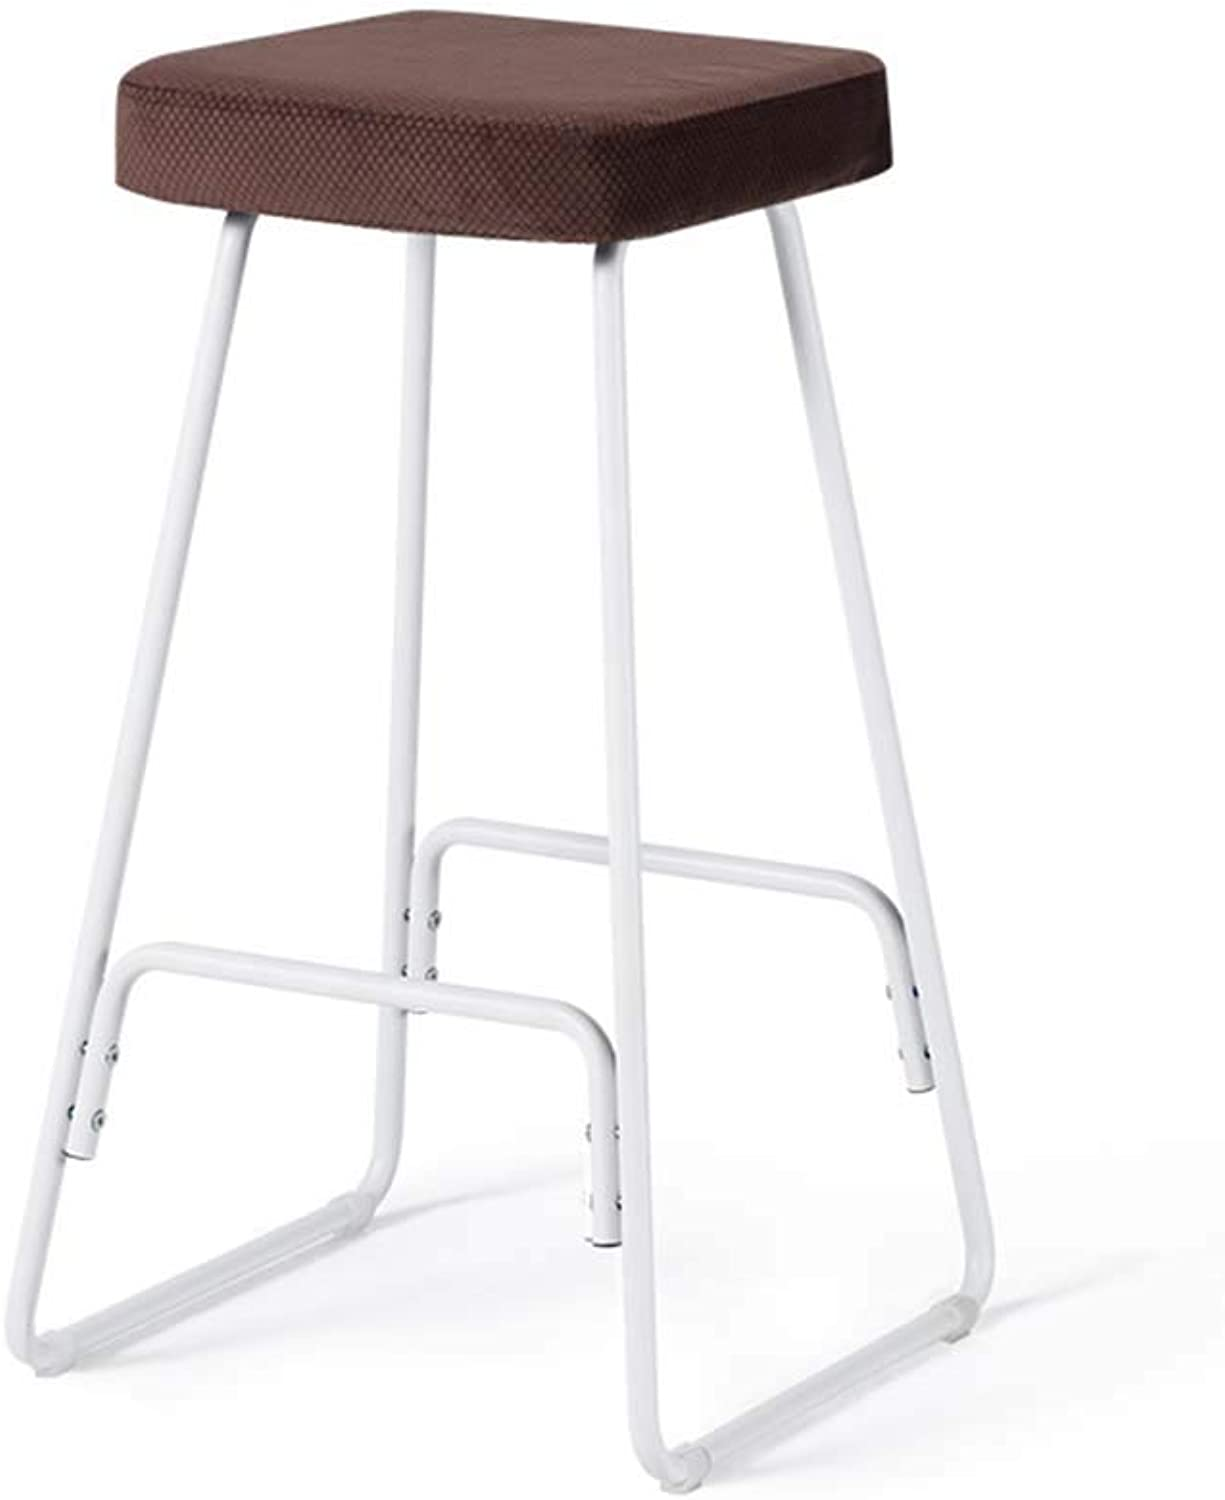 Bar stool Wrought Iron bar stool Modern Minimalist Fabric stool bar stool 9 colors Optional